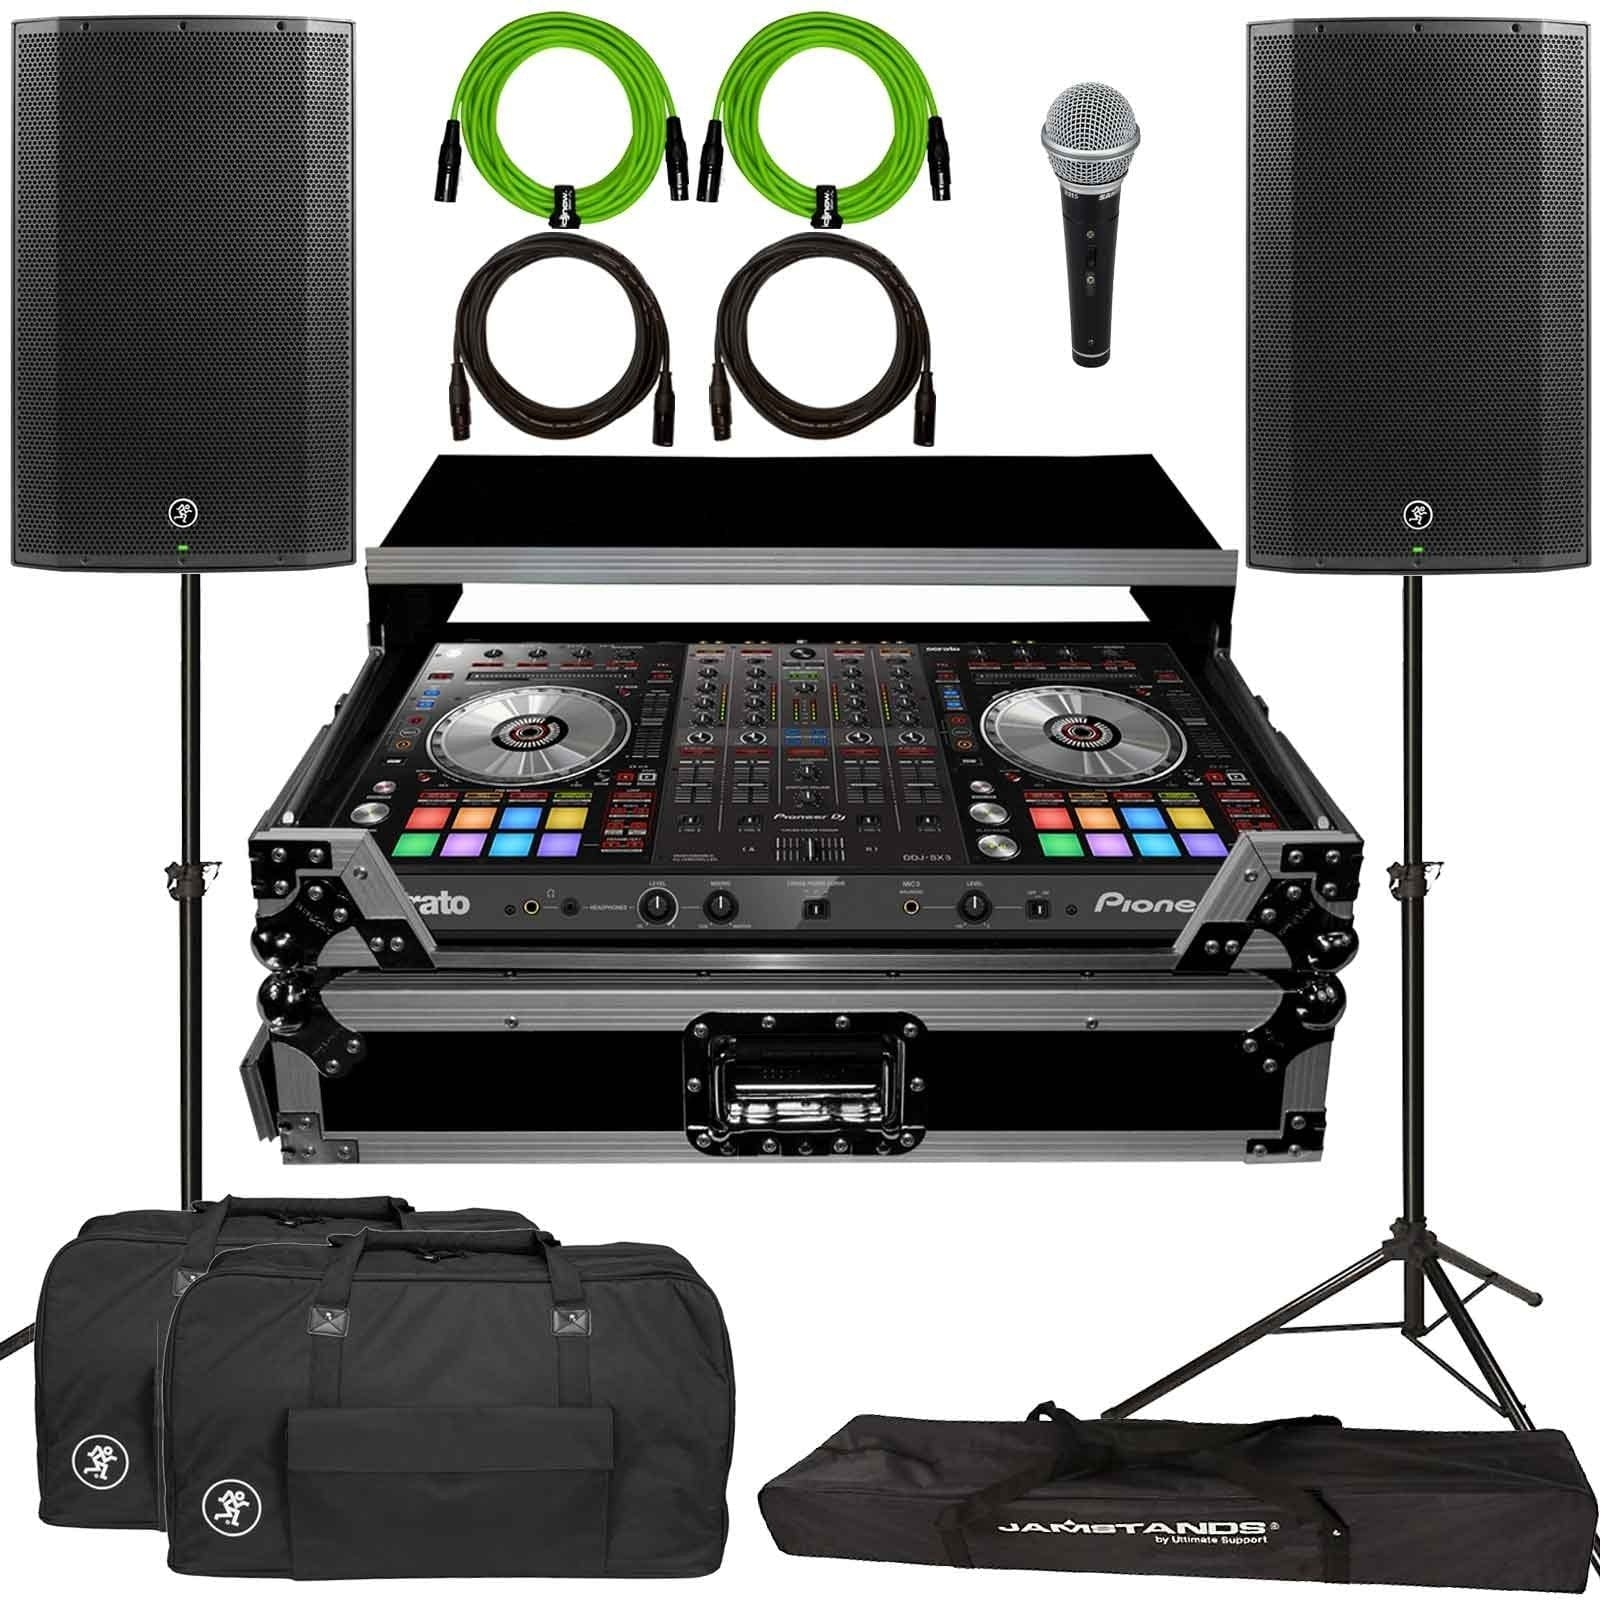 pioneer-dj-ddj-sx3-4-channel-serato-dj-pro-controller-with-mackie-thump12a-12-powered-speakers-flight-case-package-a64